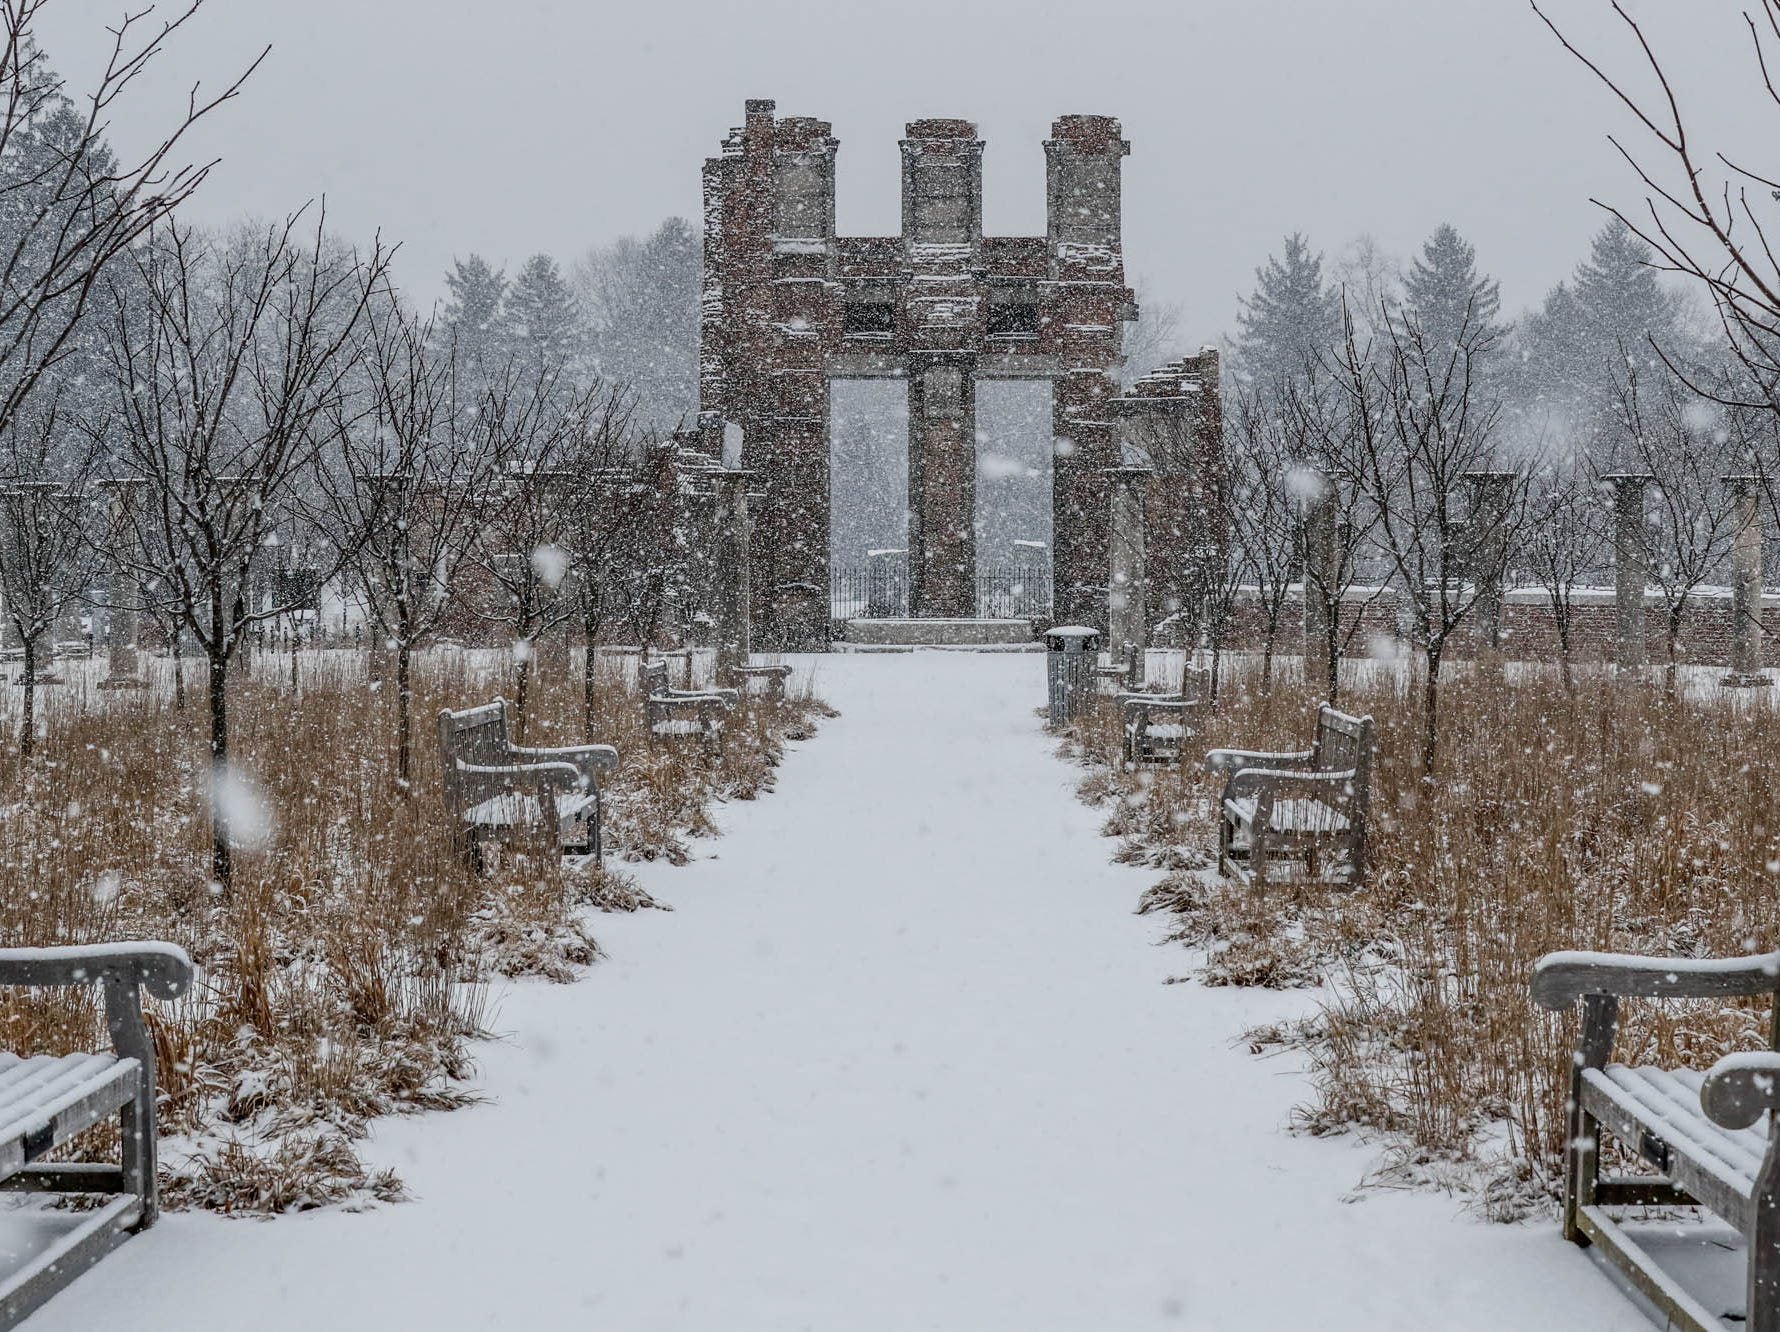 Snow falls on the Holliday Park ruins in Indianapolis on Sunday, Feb. 10, 2019.